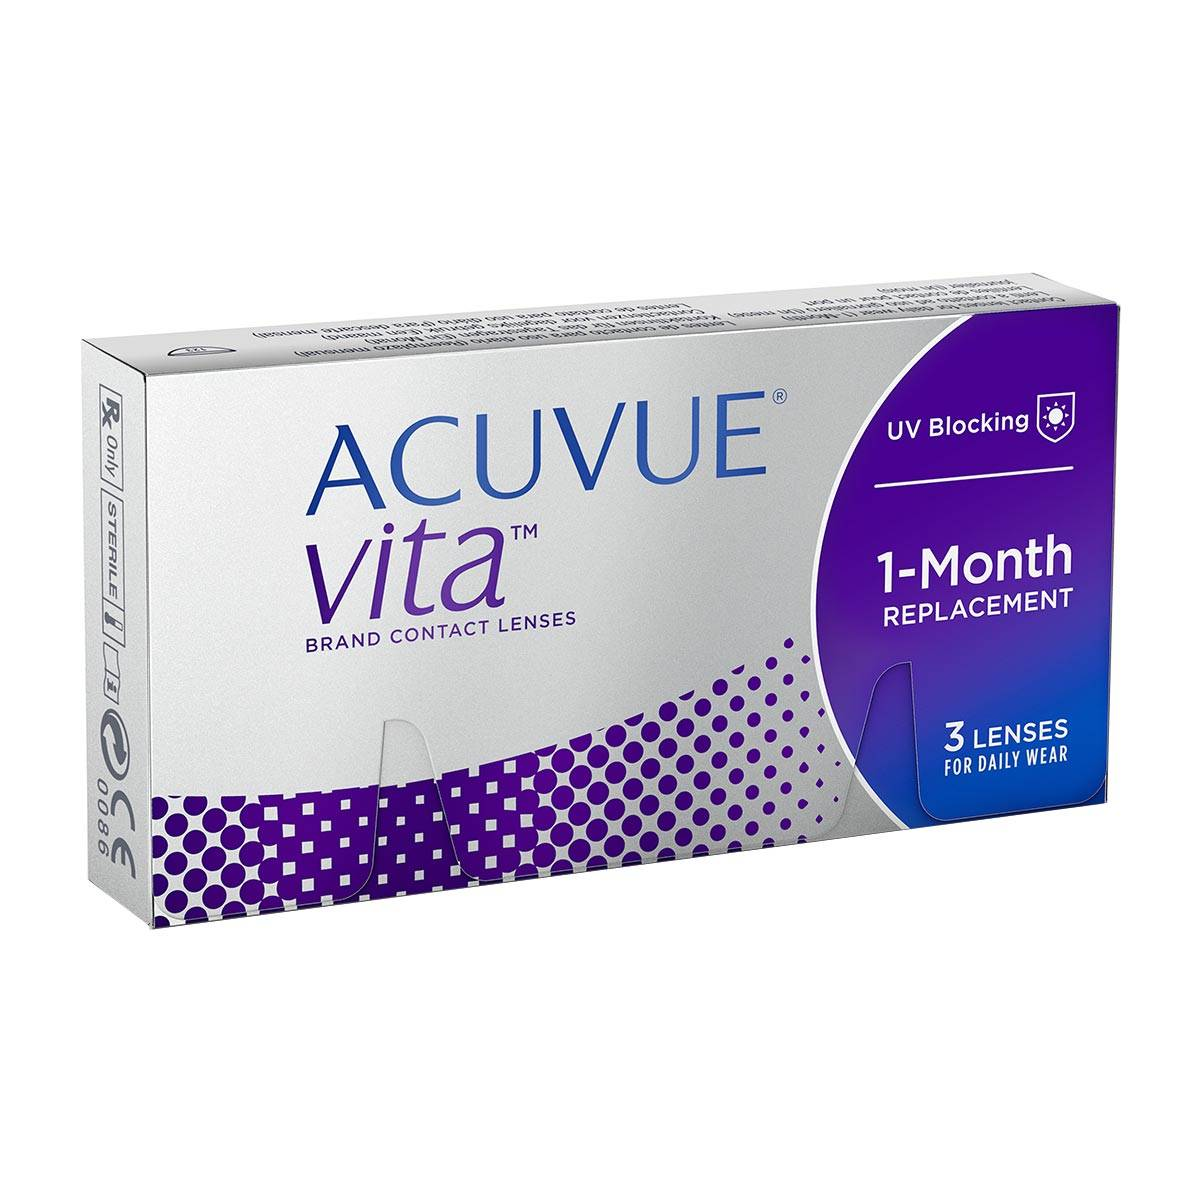 Acuvue Vita (3 Contact Lenses), Monthly Disposables by Johnson & Johnson, Silicone Hydrogel